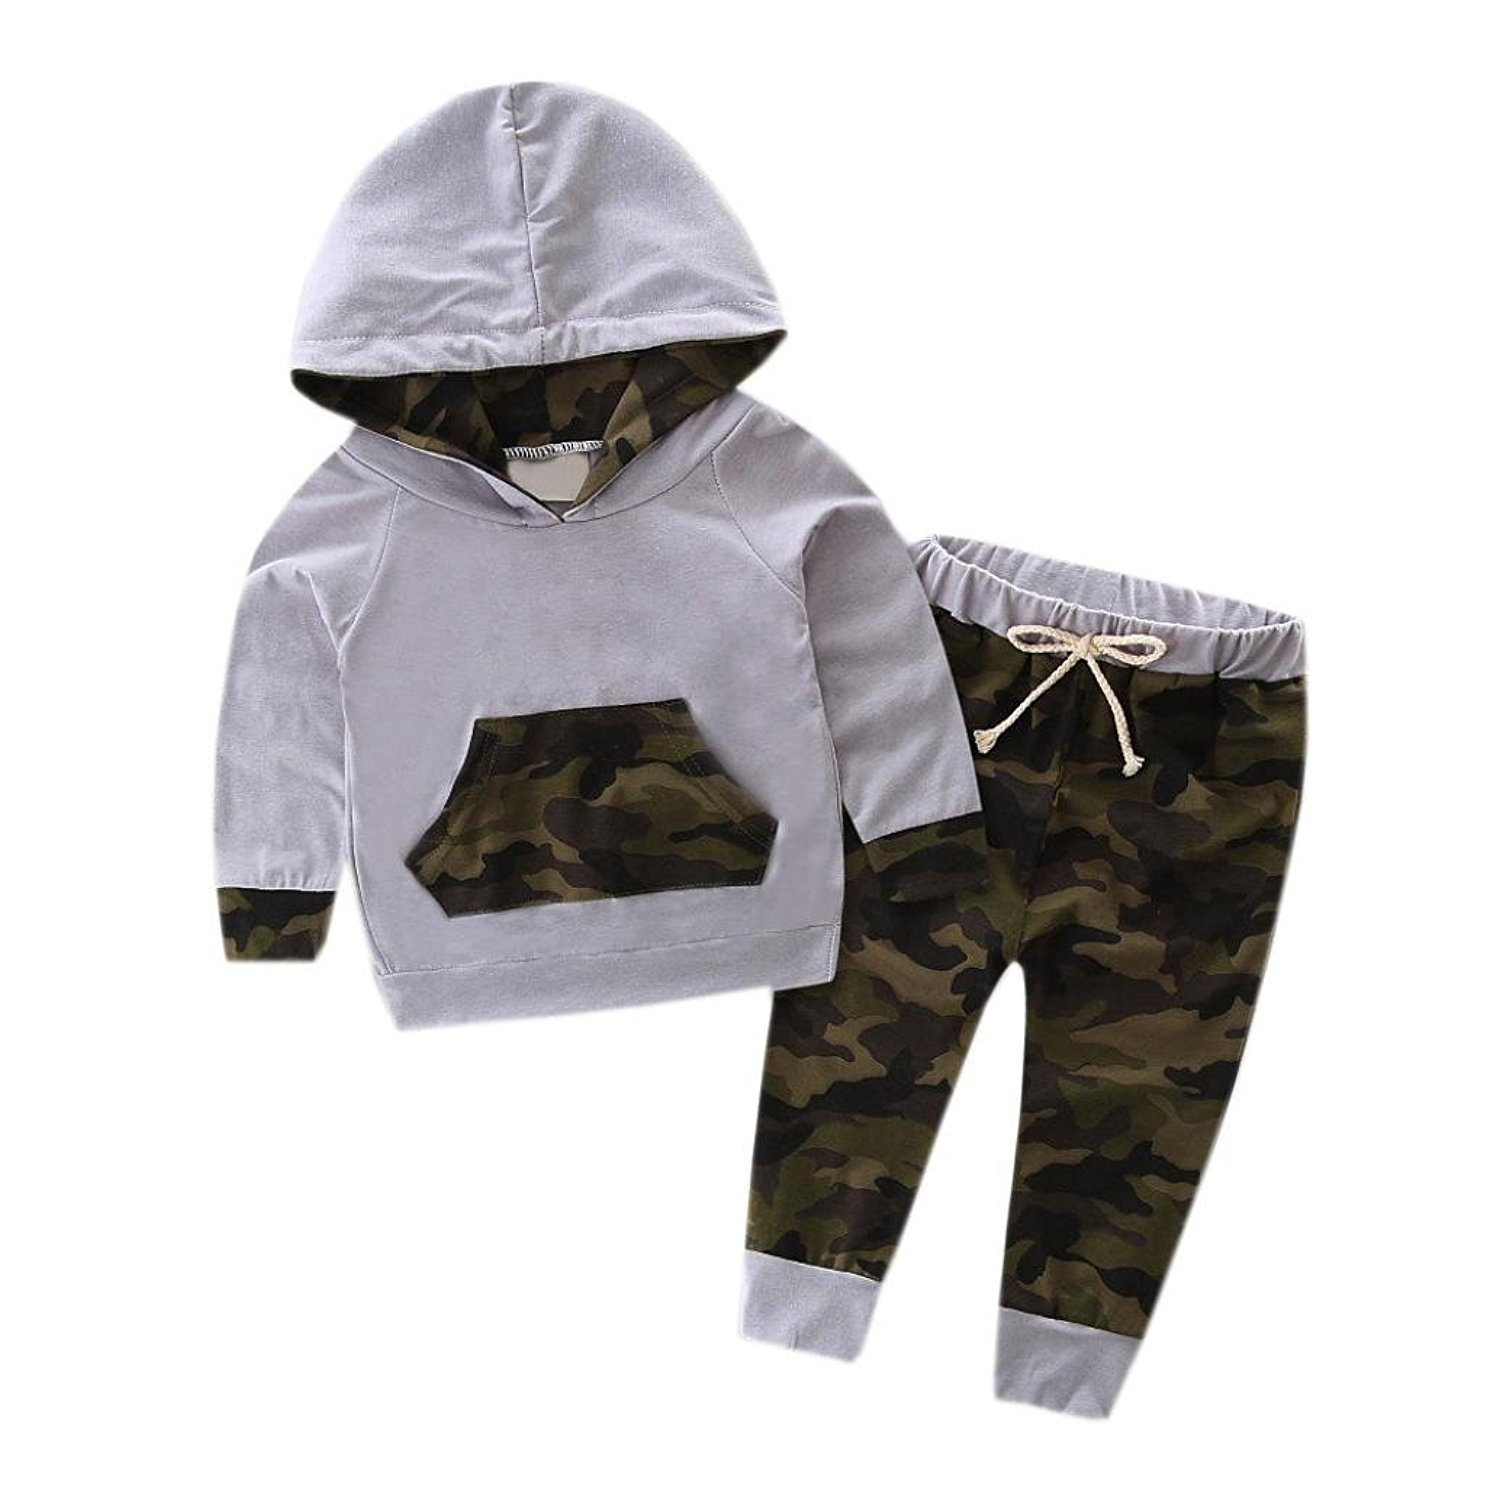 Webla Toddler Baby Boy Tracksuit Hooded Top+Camouflage Pants Outfits Set Ages 0-24 Months